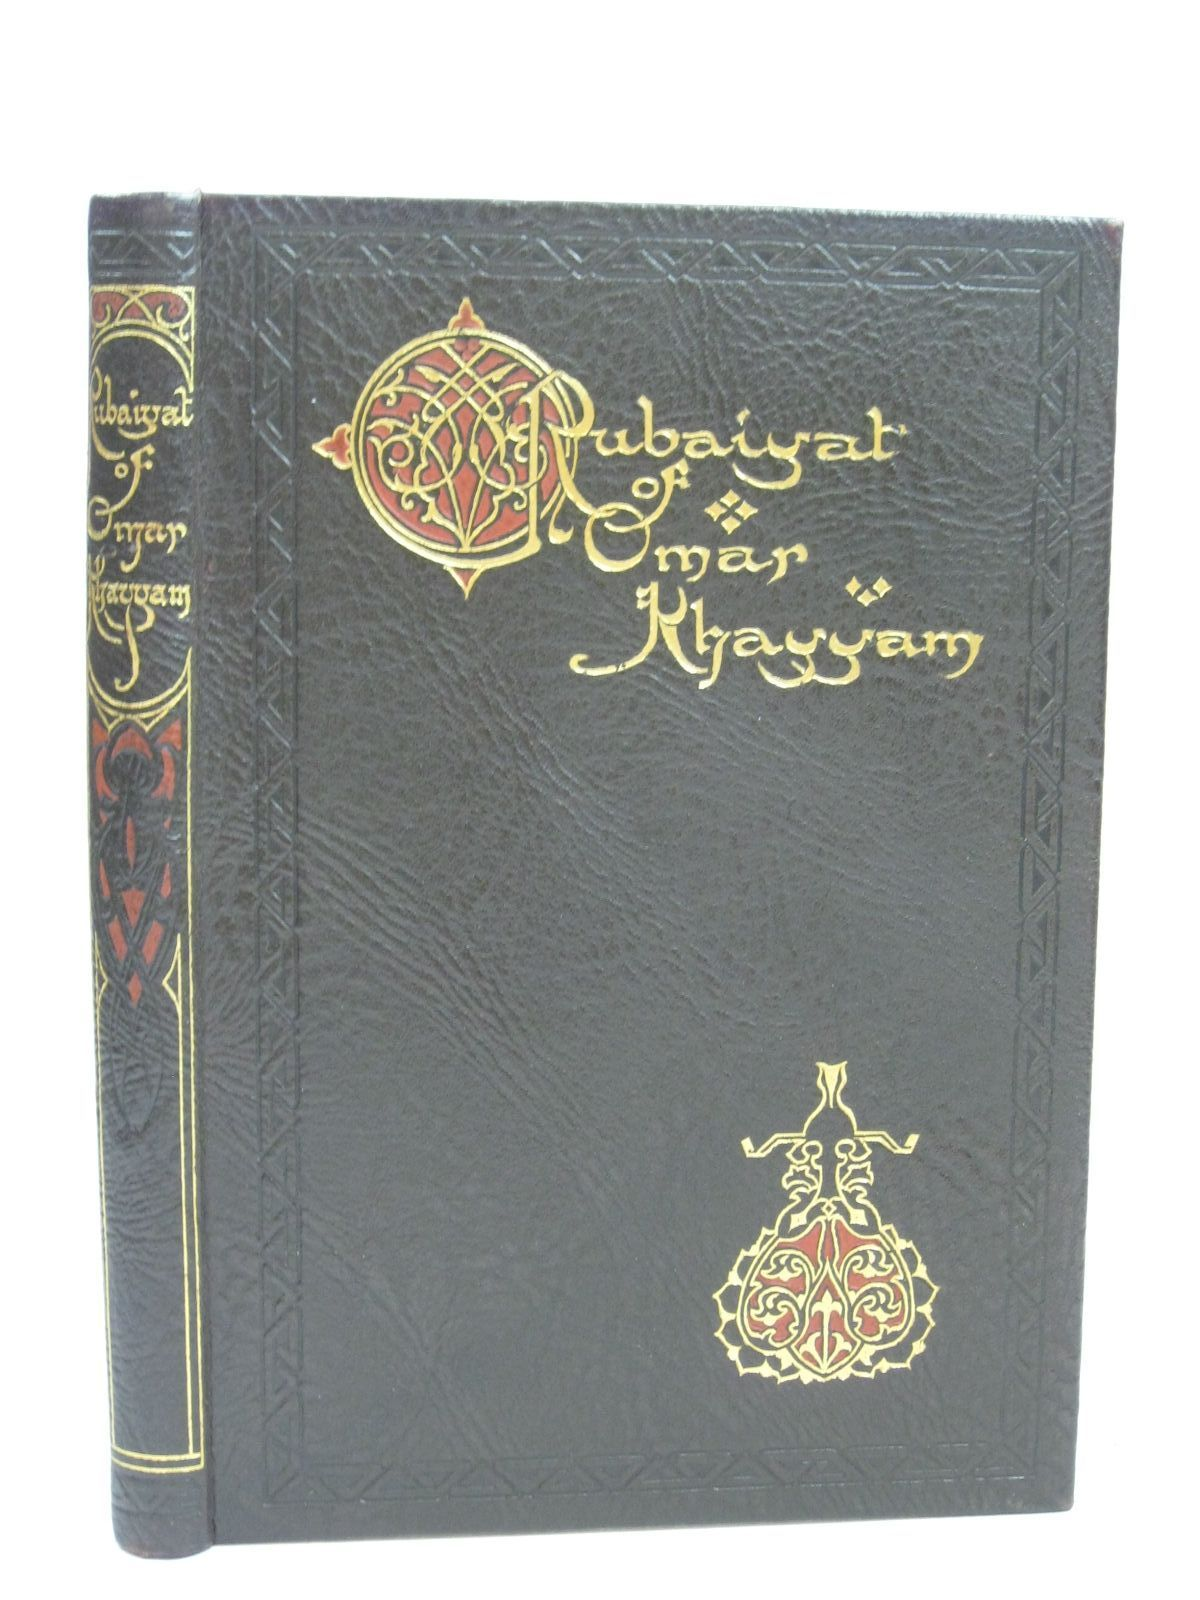 Photo of RUBAIYAT OF OMAR KHAYYAM written by Fitzgerald, Edward illustrated by Pogany, Willy published by George G. Harrap & Co. Ltd. (STOCK CODE: 1405791)  for sale by Stella & Rose's Books